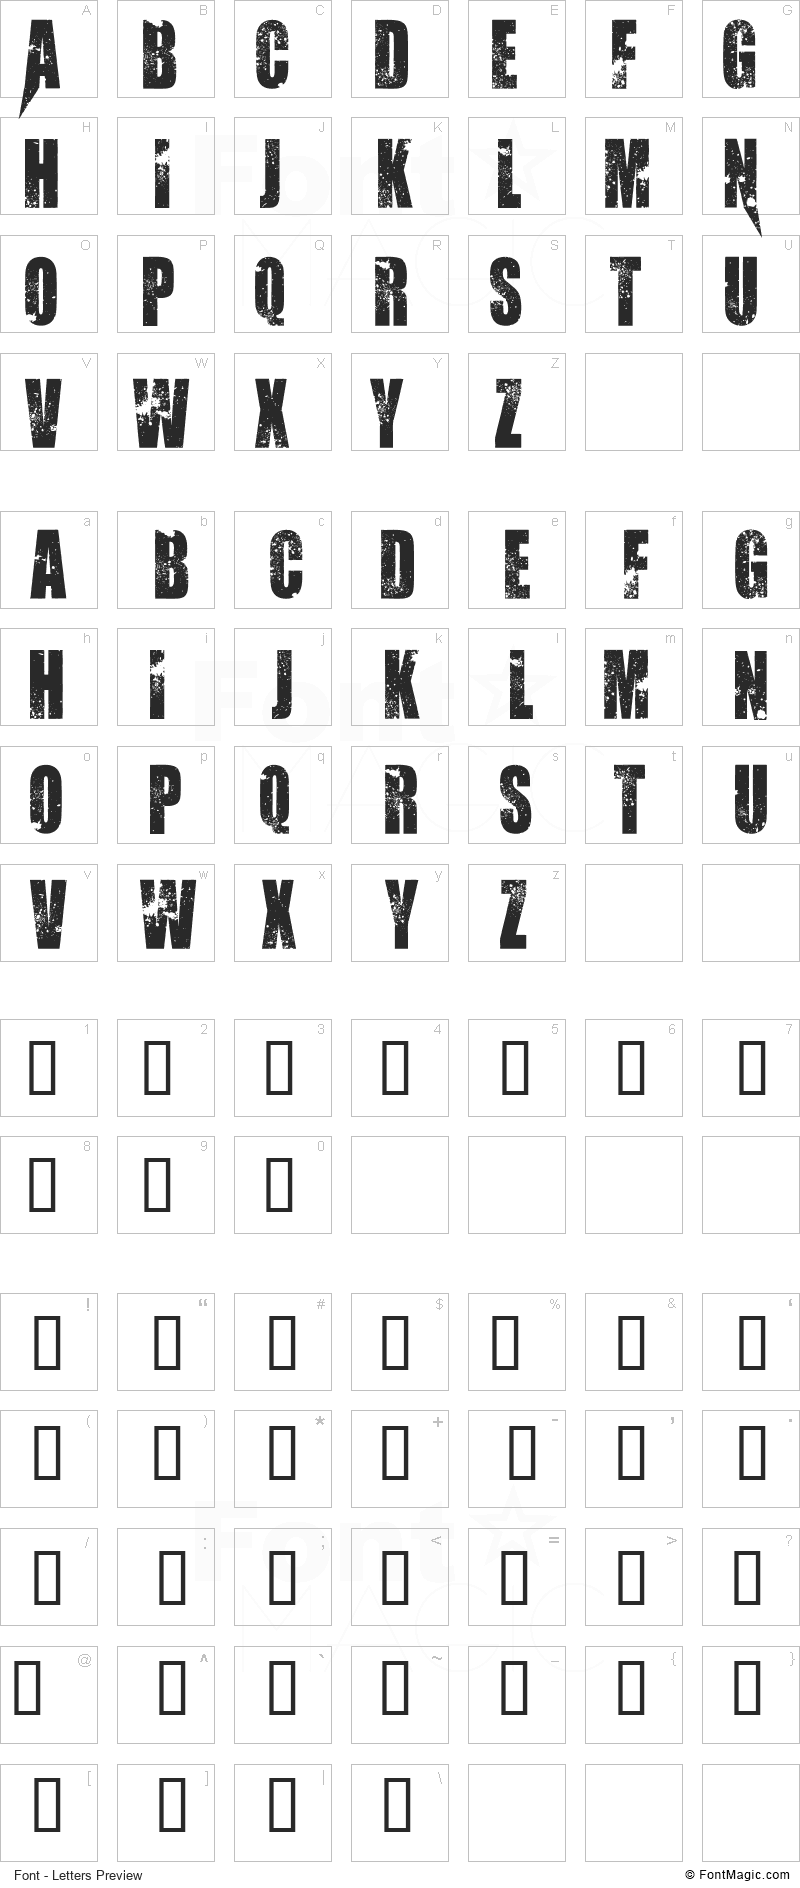 Abandon Font - All Latters Preview Chart